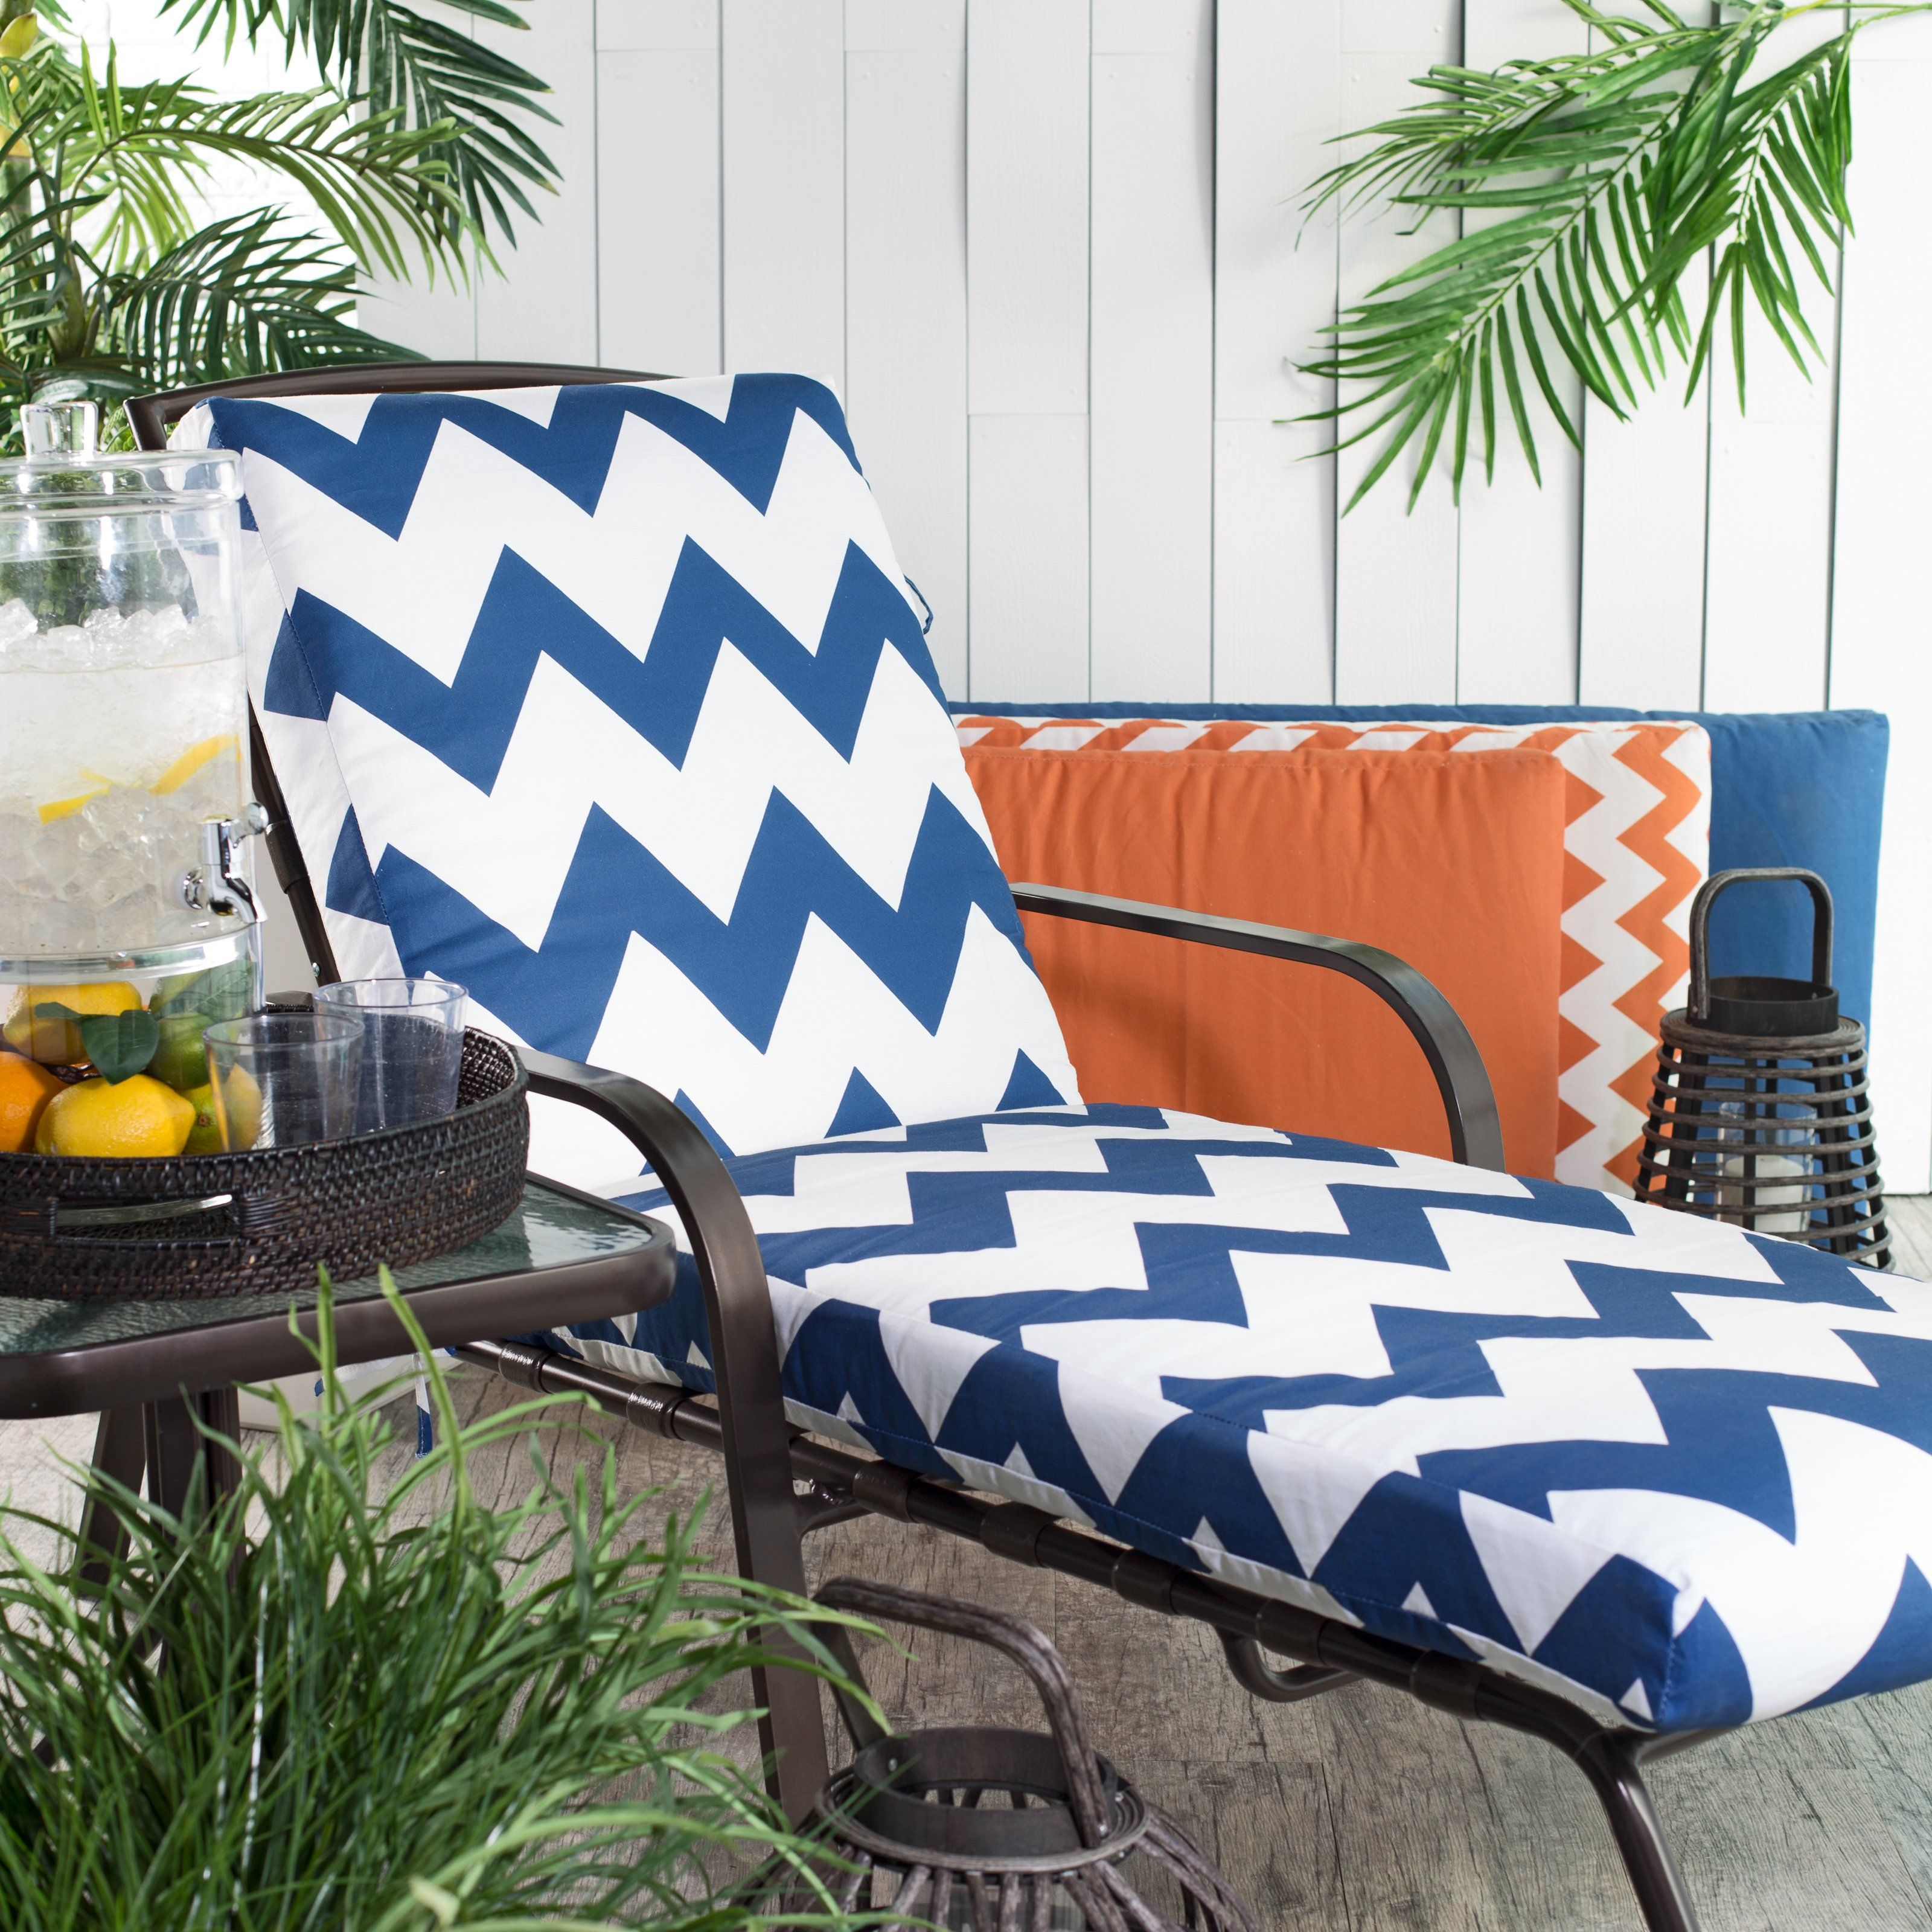 Attractive Coral Coast Valencia Outdoor Chaise Lounge Cushion   Boxed Edge